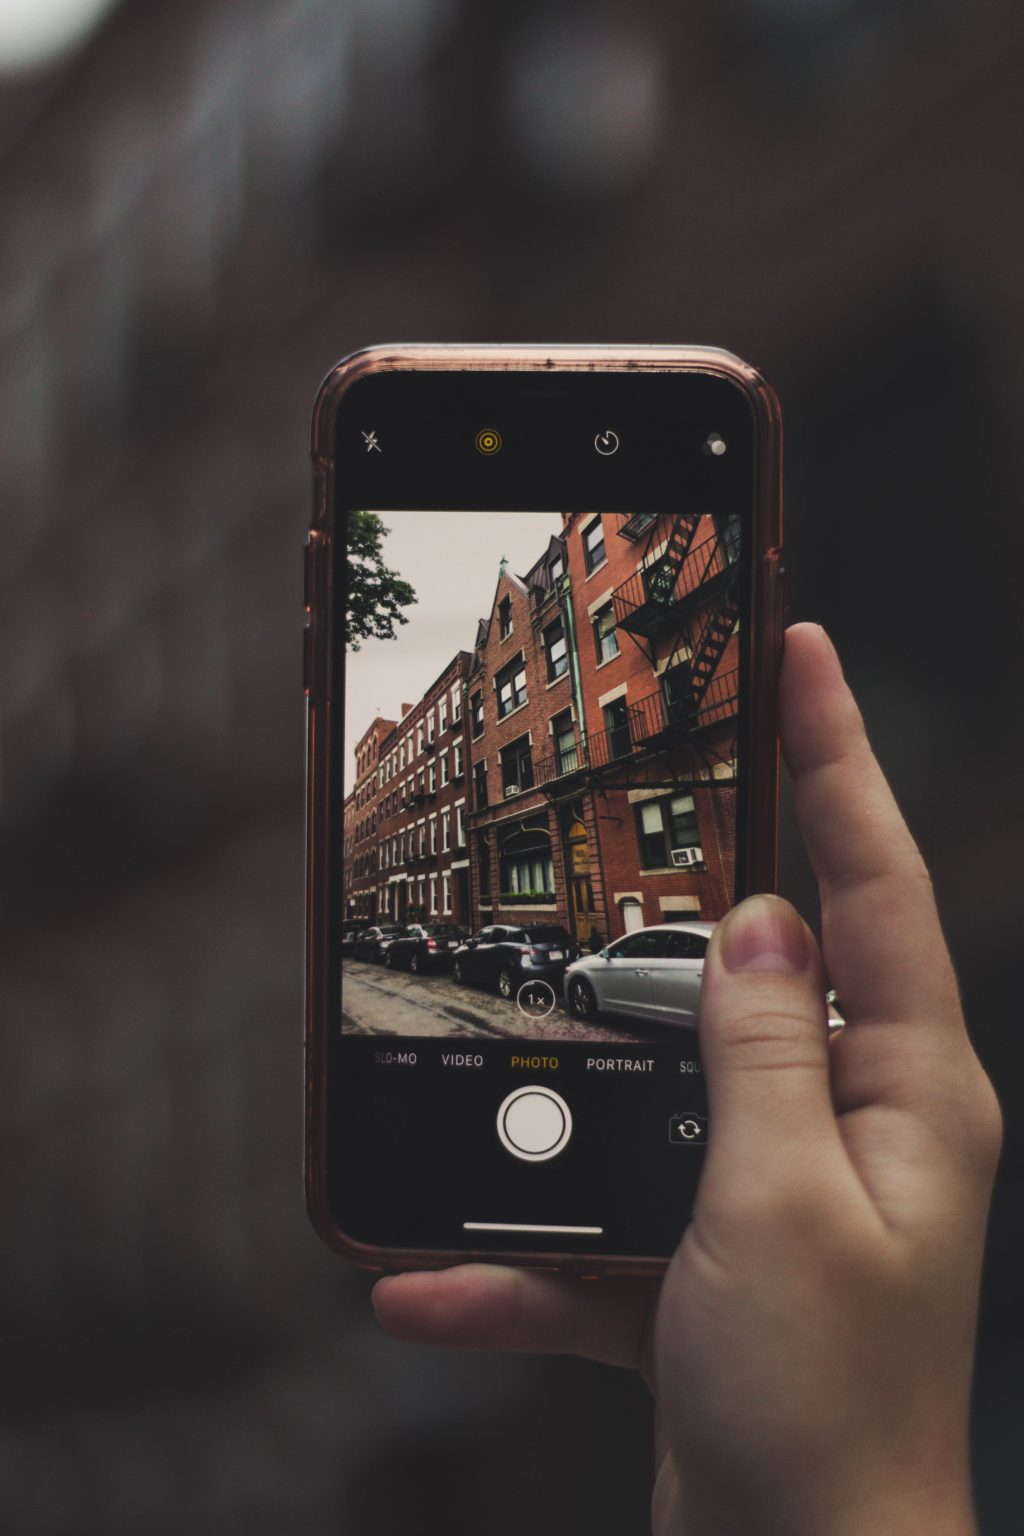 Old iPhone taking a photo of a building